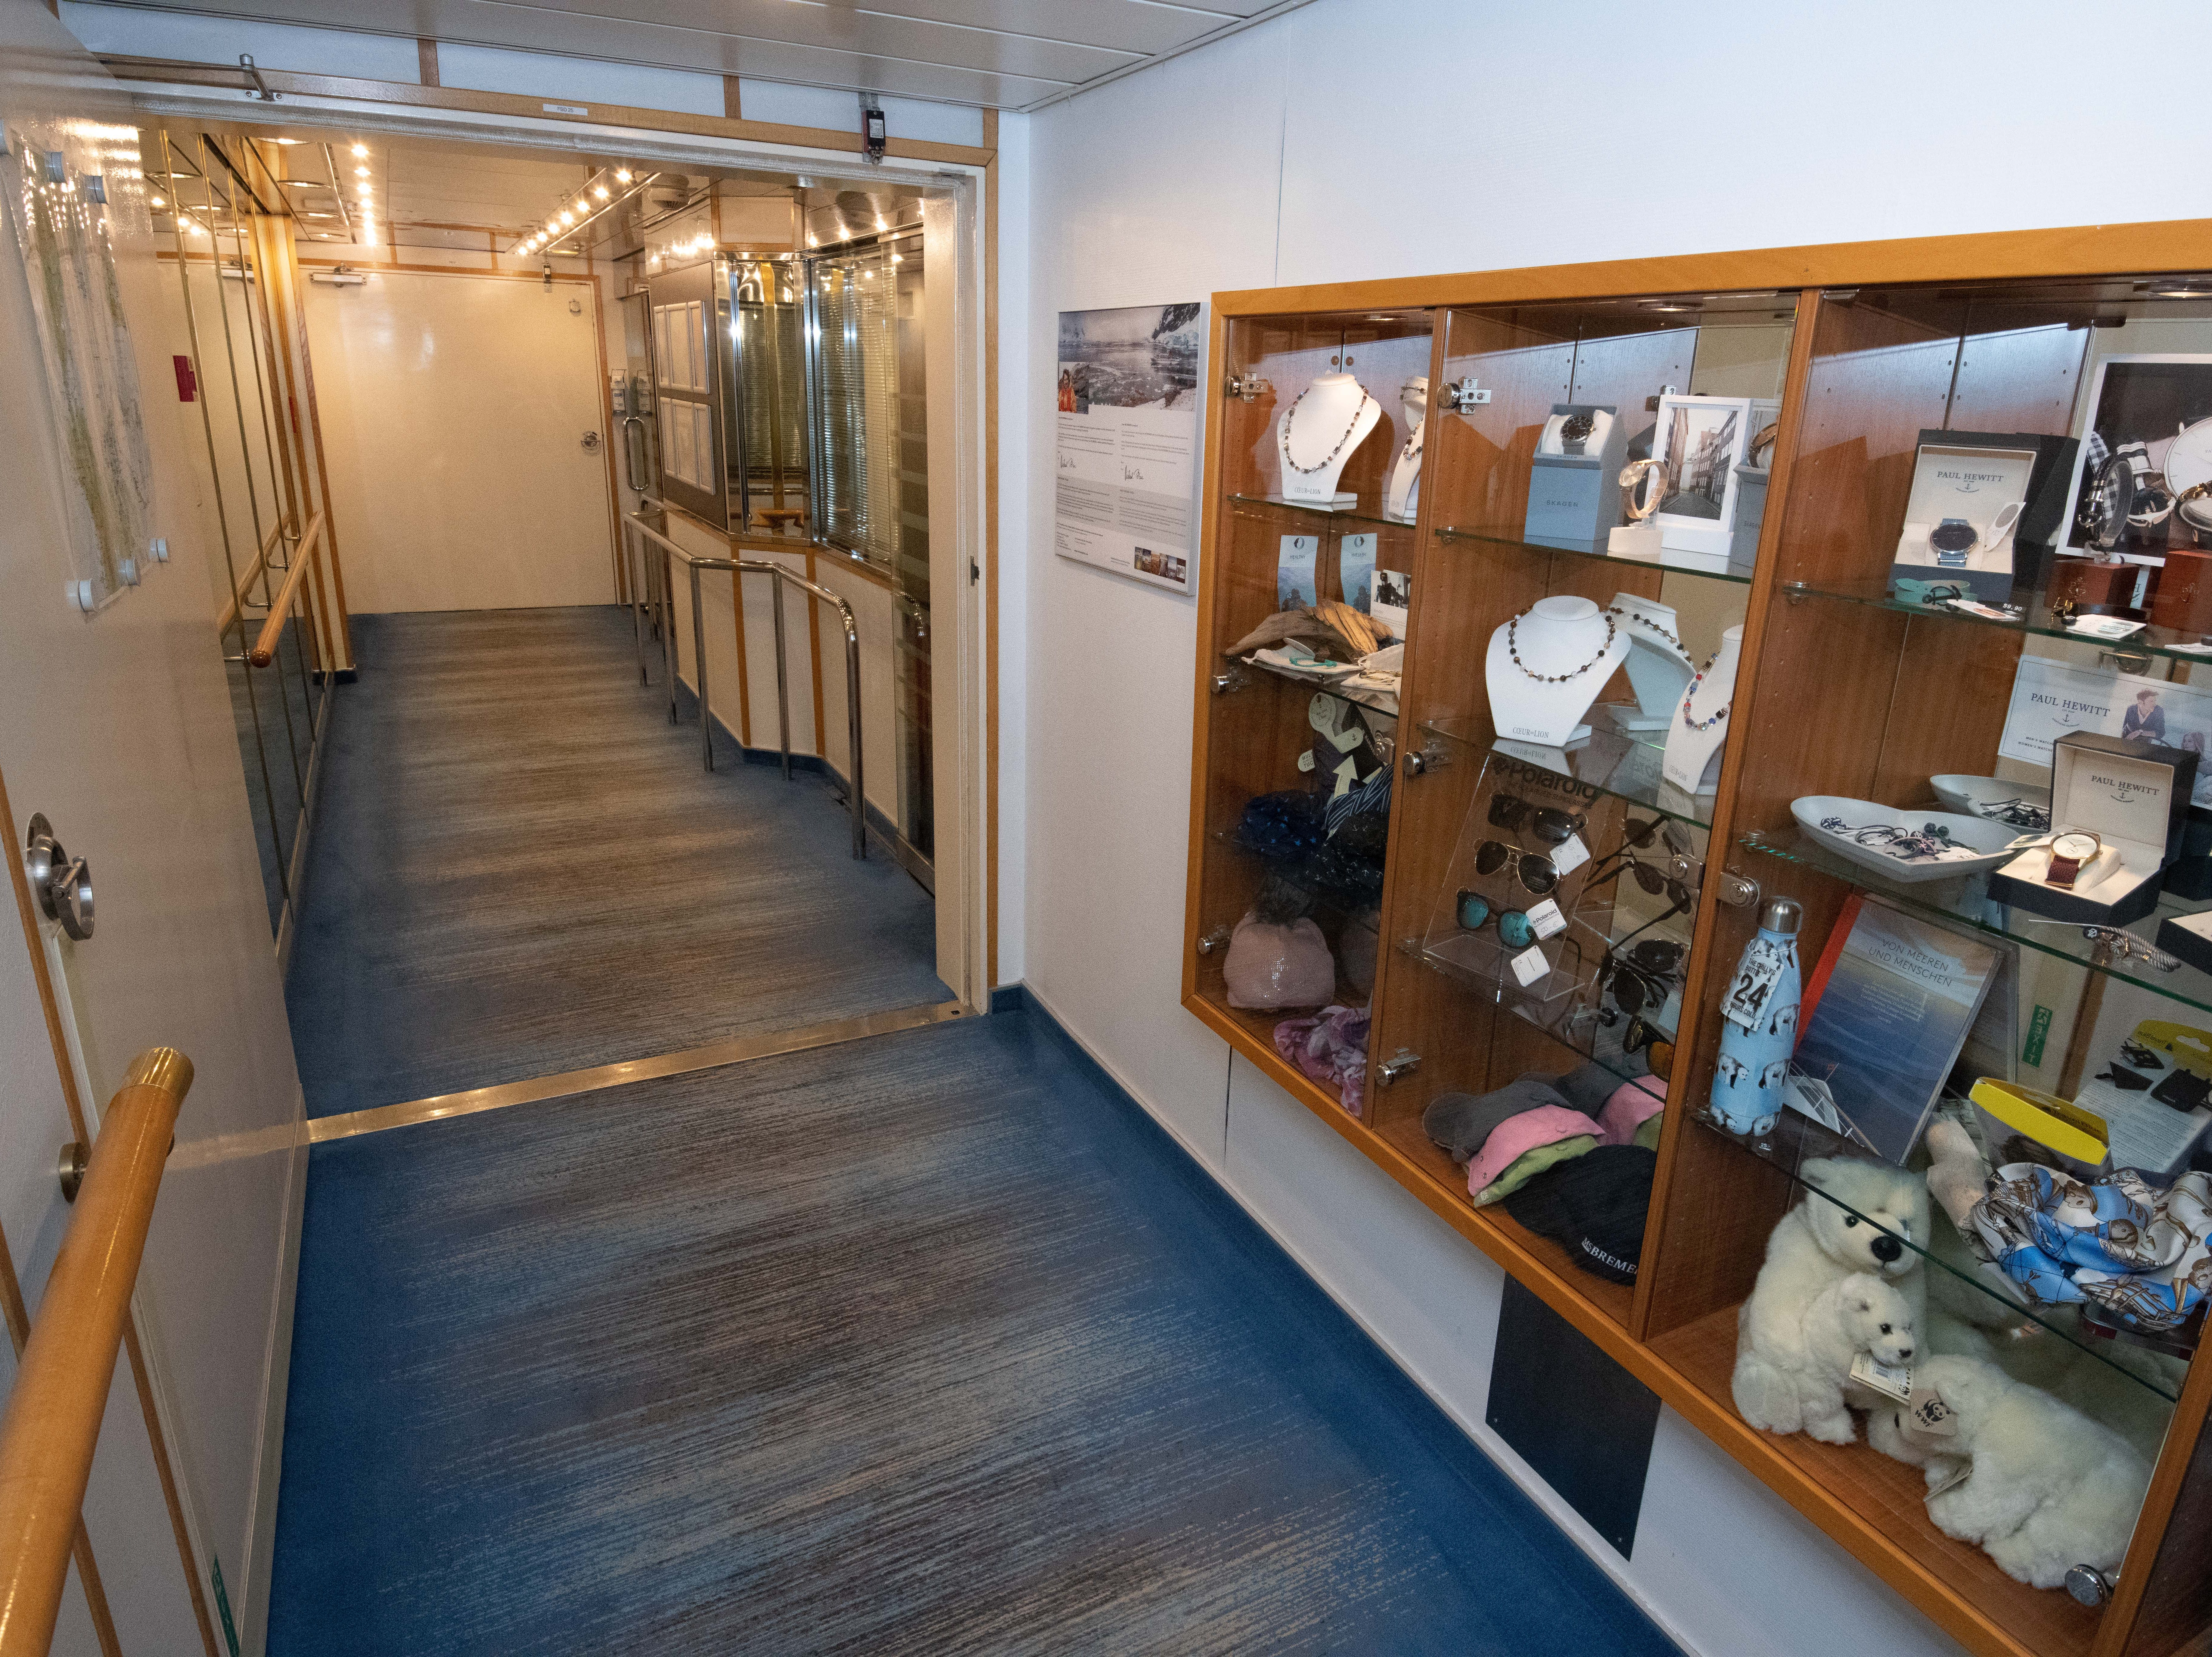 A small boutique is located on Deck 4 near the main restaurant.